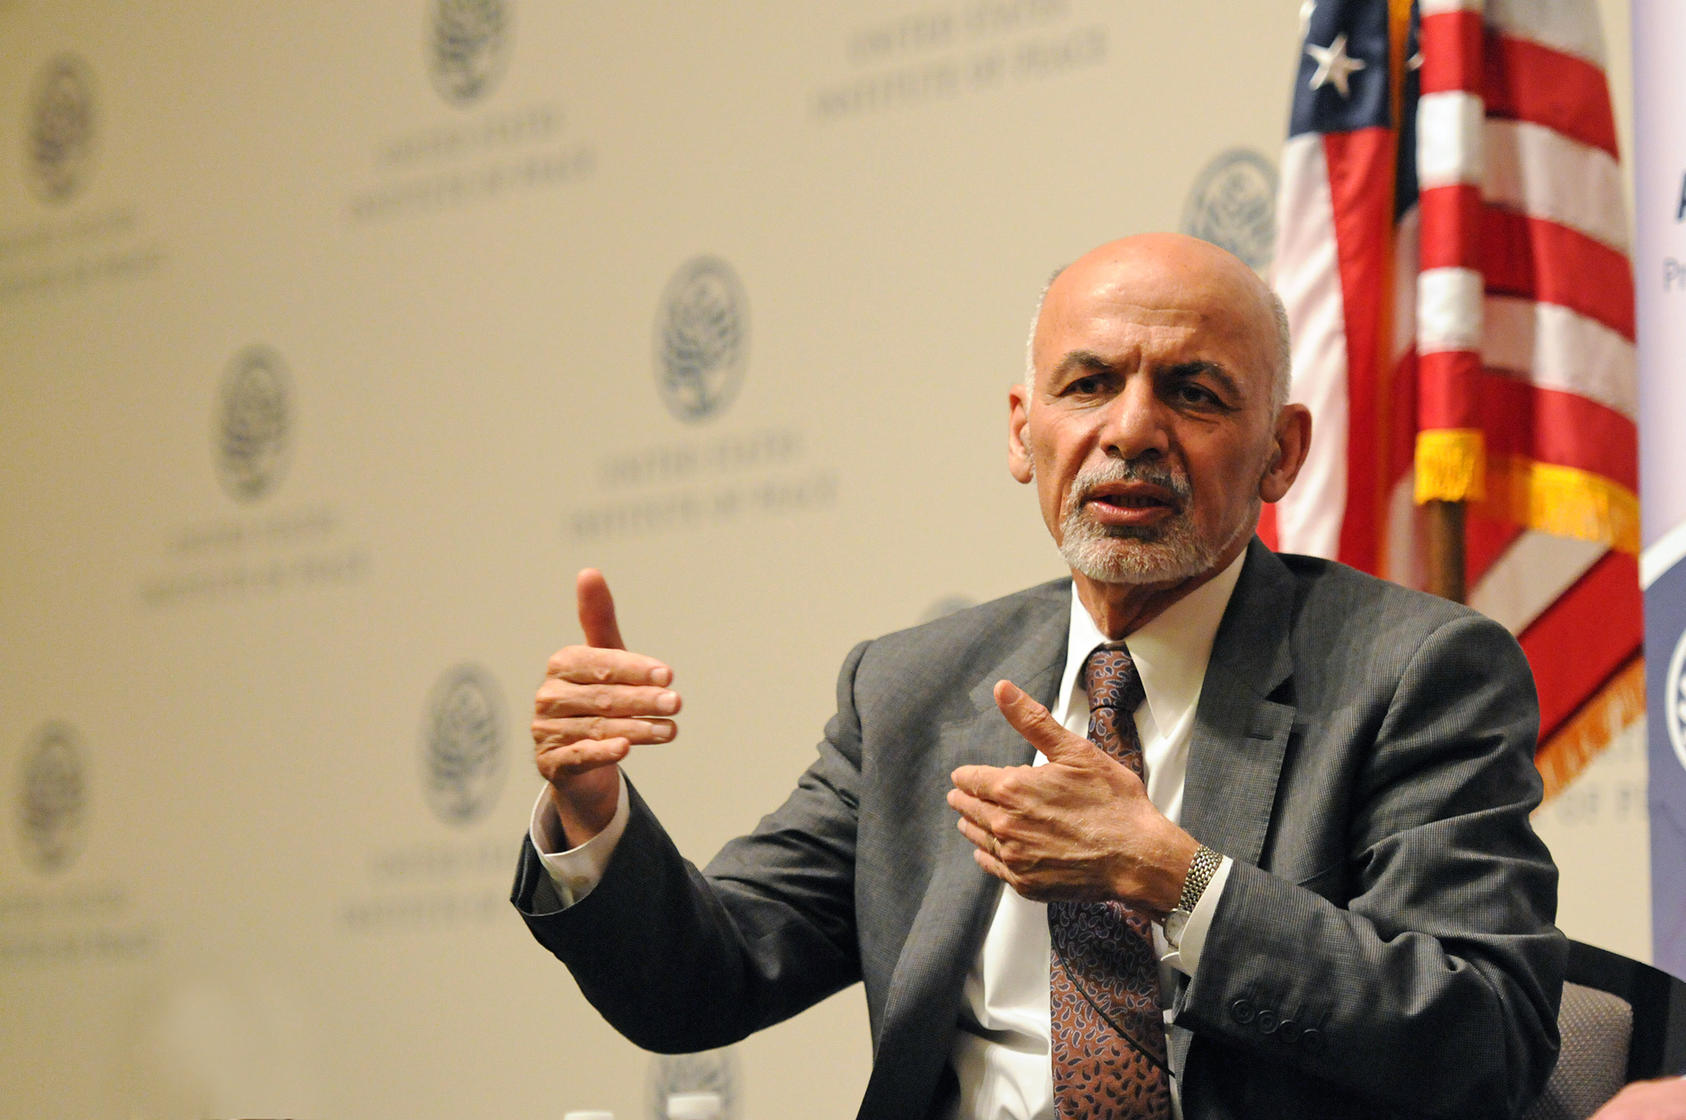 Afghan President Ashraf Ghani, shown speaking at USIP in 2015, announced new Taliban prisoner releases and laid out his vision for Afghanistan's peace process. He spoke in an online discussion from Kabul that was broadcast nationally in Afghanistan.